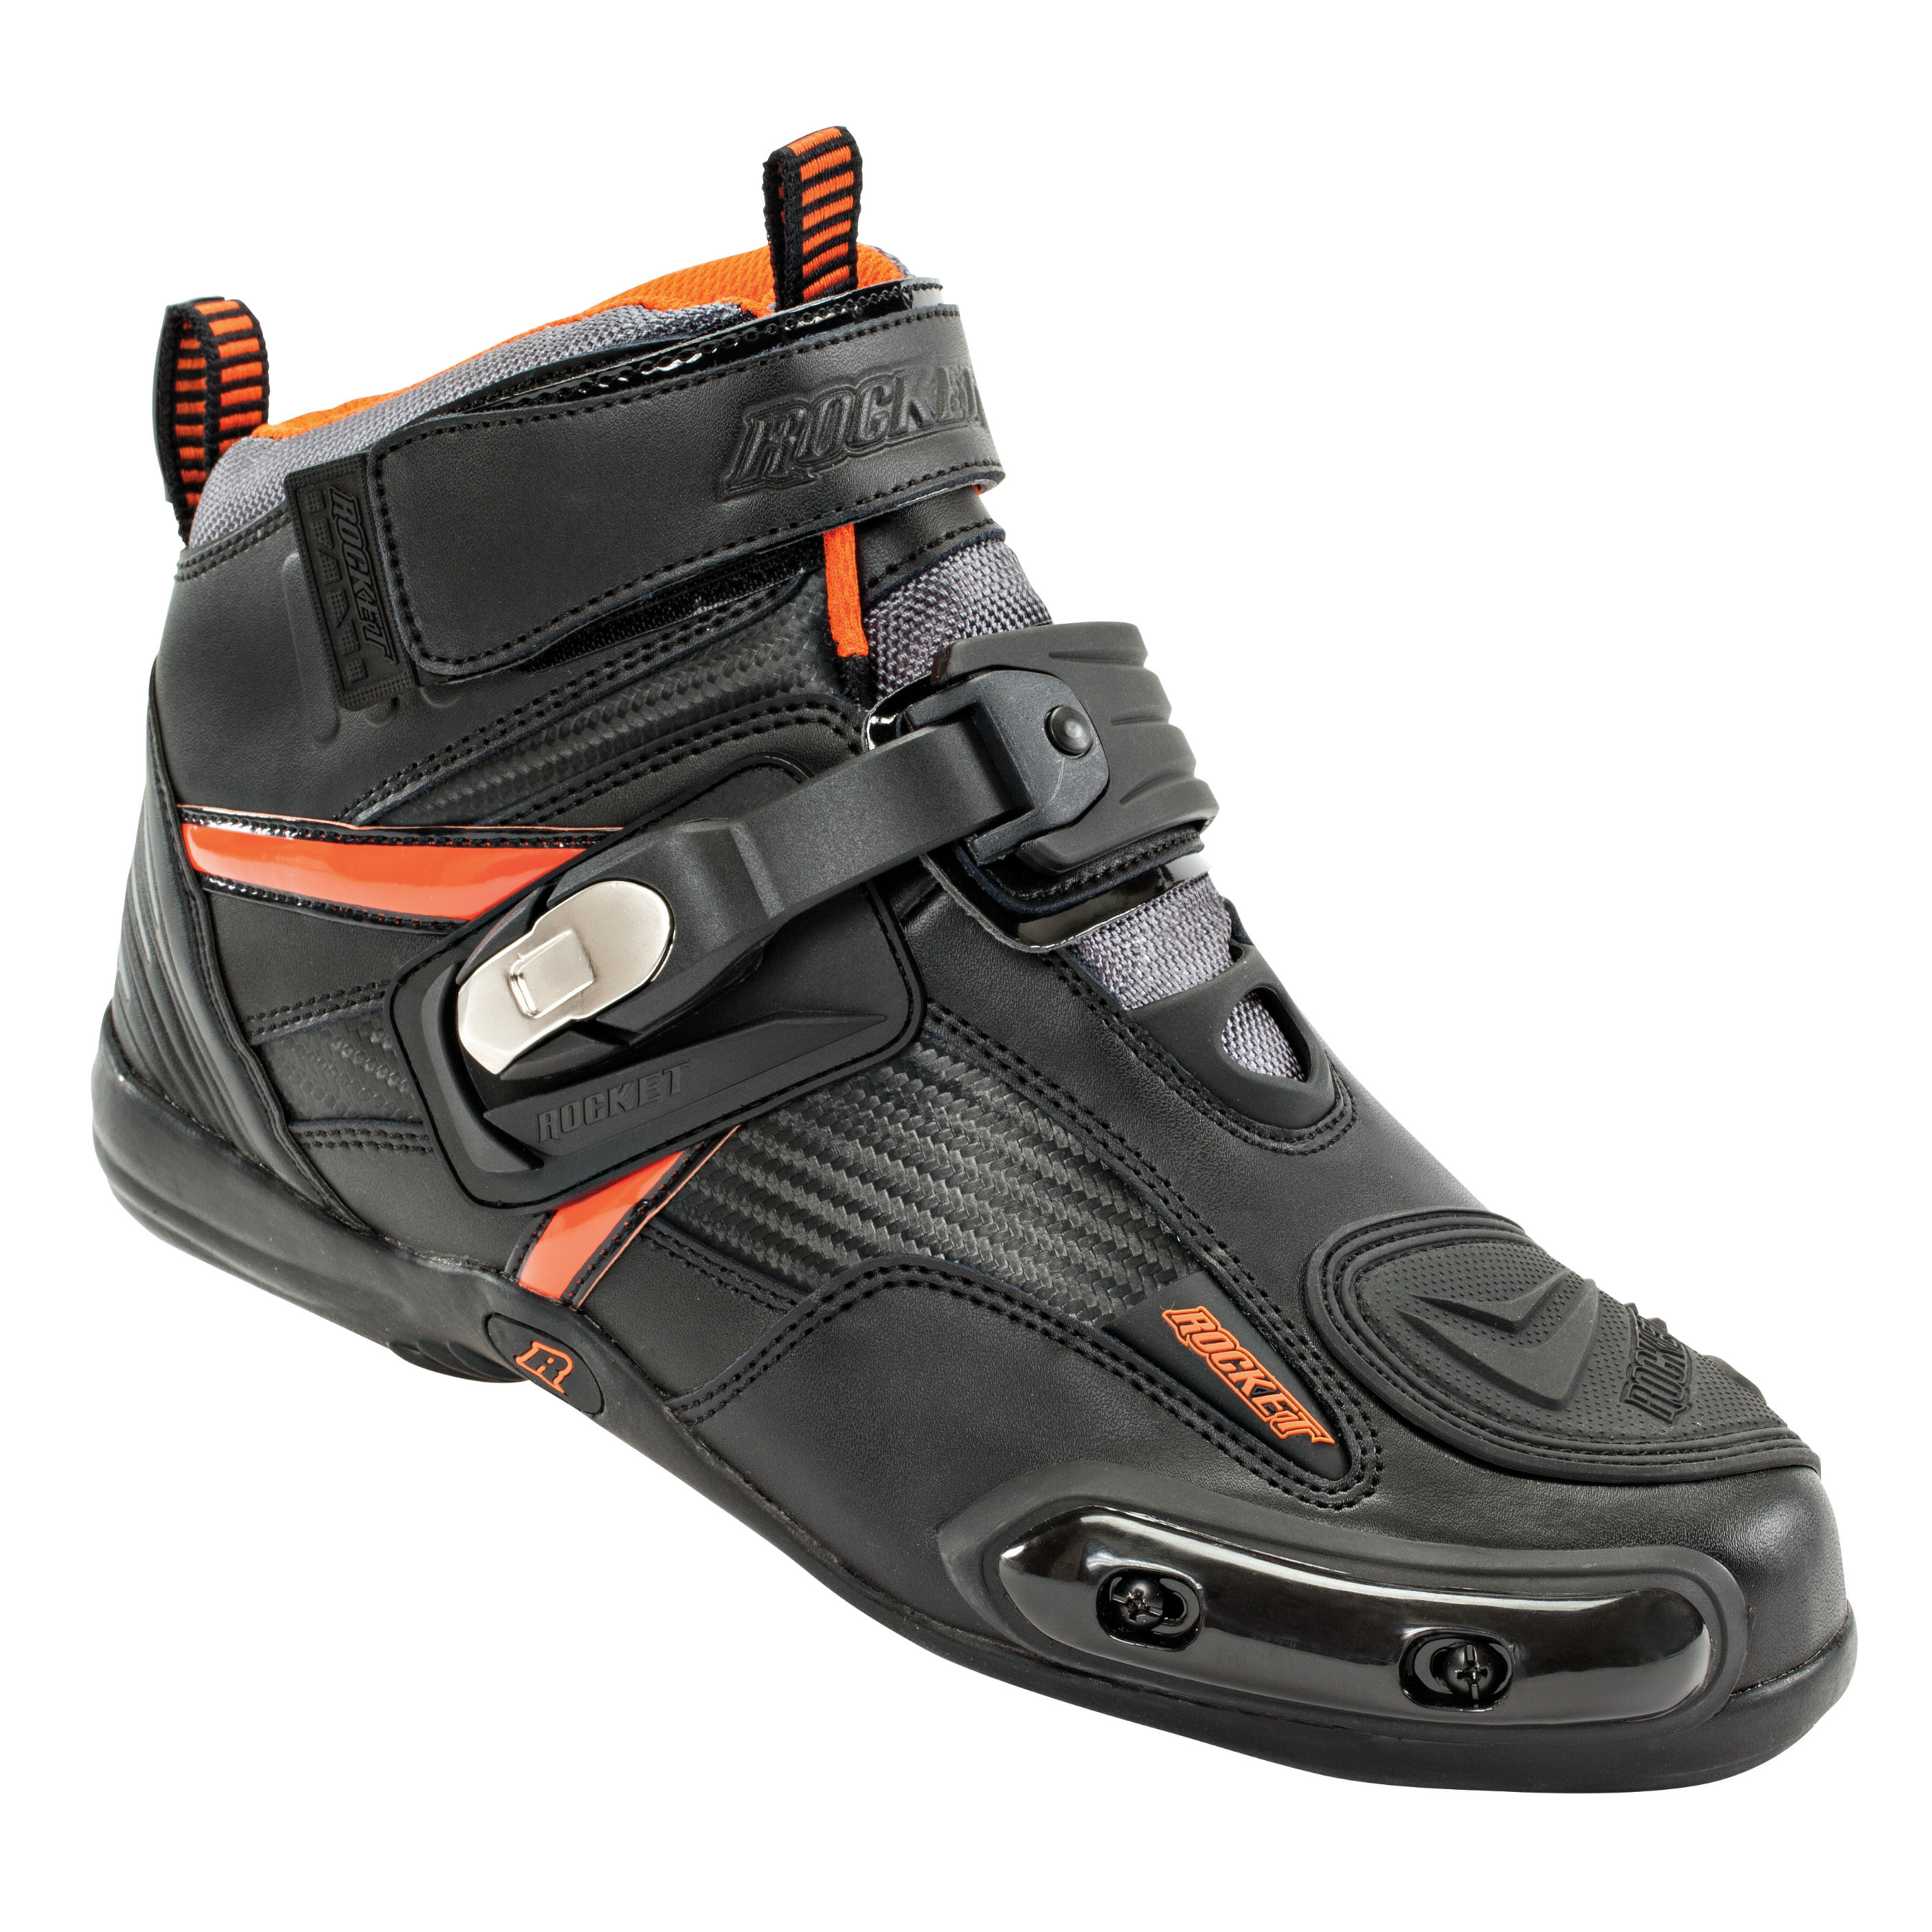 Don't Like Boots? Check Out These - 920.3KB